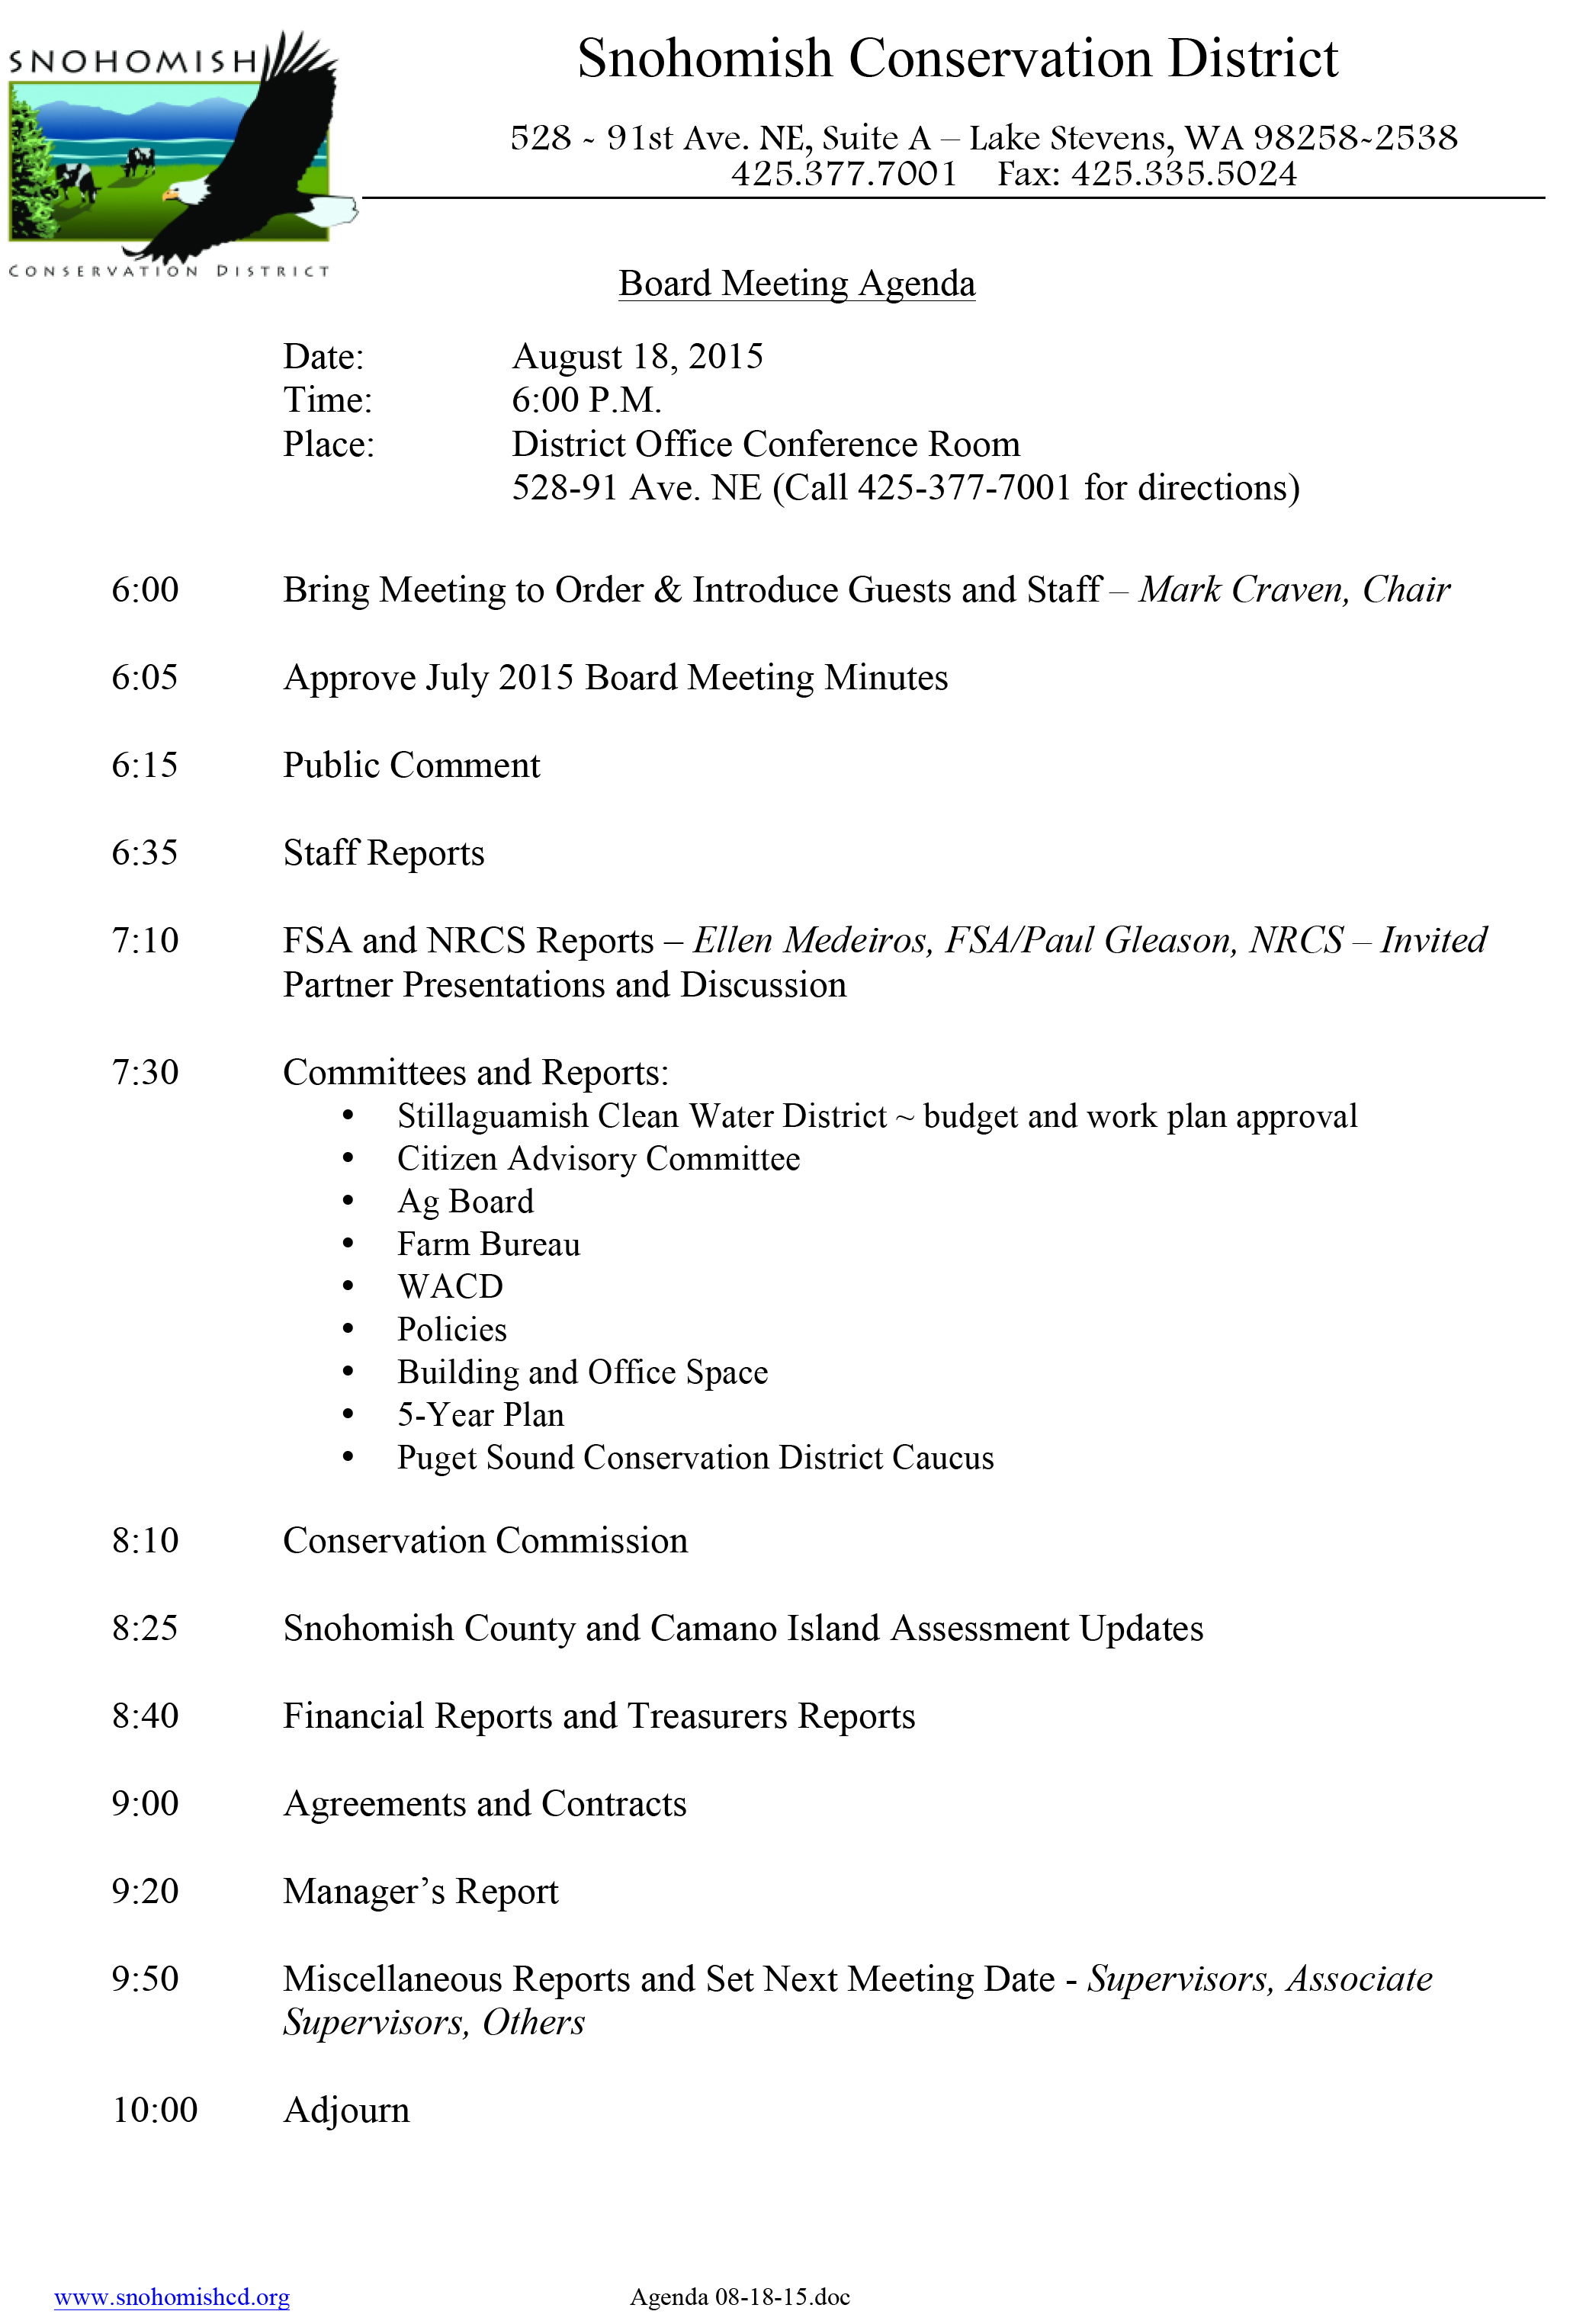 """Image of Board Meeting Agenda         0   0   1   135   825   Snohomish Conservation District   45   30   930   14.0           96              Normal   0           false   false   false     EN-US   JA   X-NONE                                                                                                                                                                                                                                                                                                                                                                               /* Style Definitions */ table.MsoNormalTable {mso-style-name:""""Table Normal""""; mso-tstyle-rowband-size:0; mso-tstyle-colband-size:0; mso-style-noshow:yes; mso-style-priority:99; mso-style-parent:""""""""; mso-padding-alt:0in 5.4pt 0in 5.4pt; mso-para-margin:0in; mso-para-margin-bottom:.0001pt; mso-pagination:widow-orphan; font-size:10.0pt; font-family:Times;}       Date: August 18, 2015  Time: 6:00 P.M.  Place: District Office Conference Room 